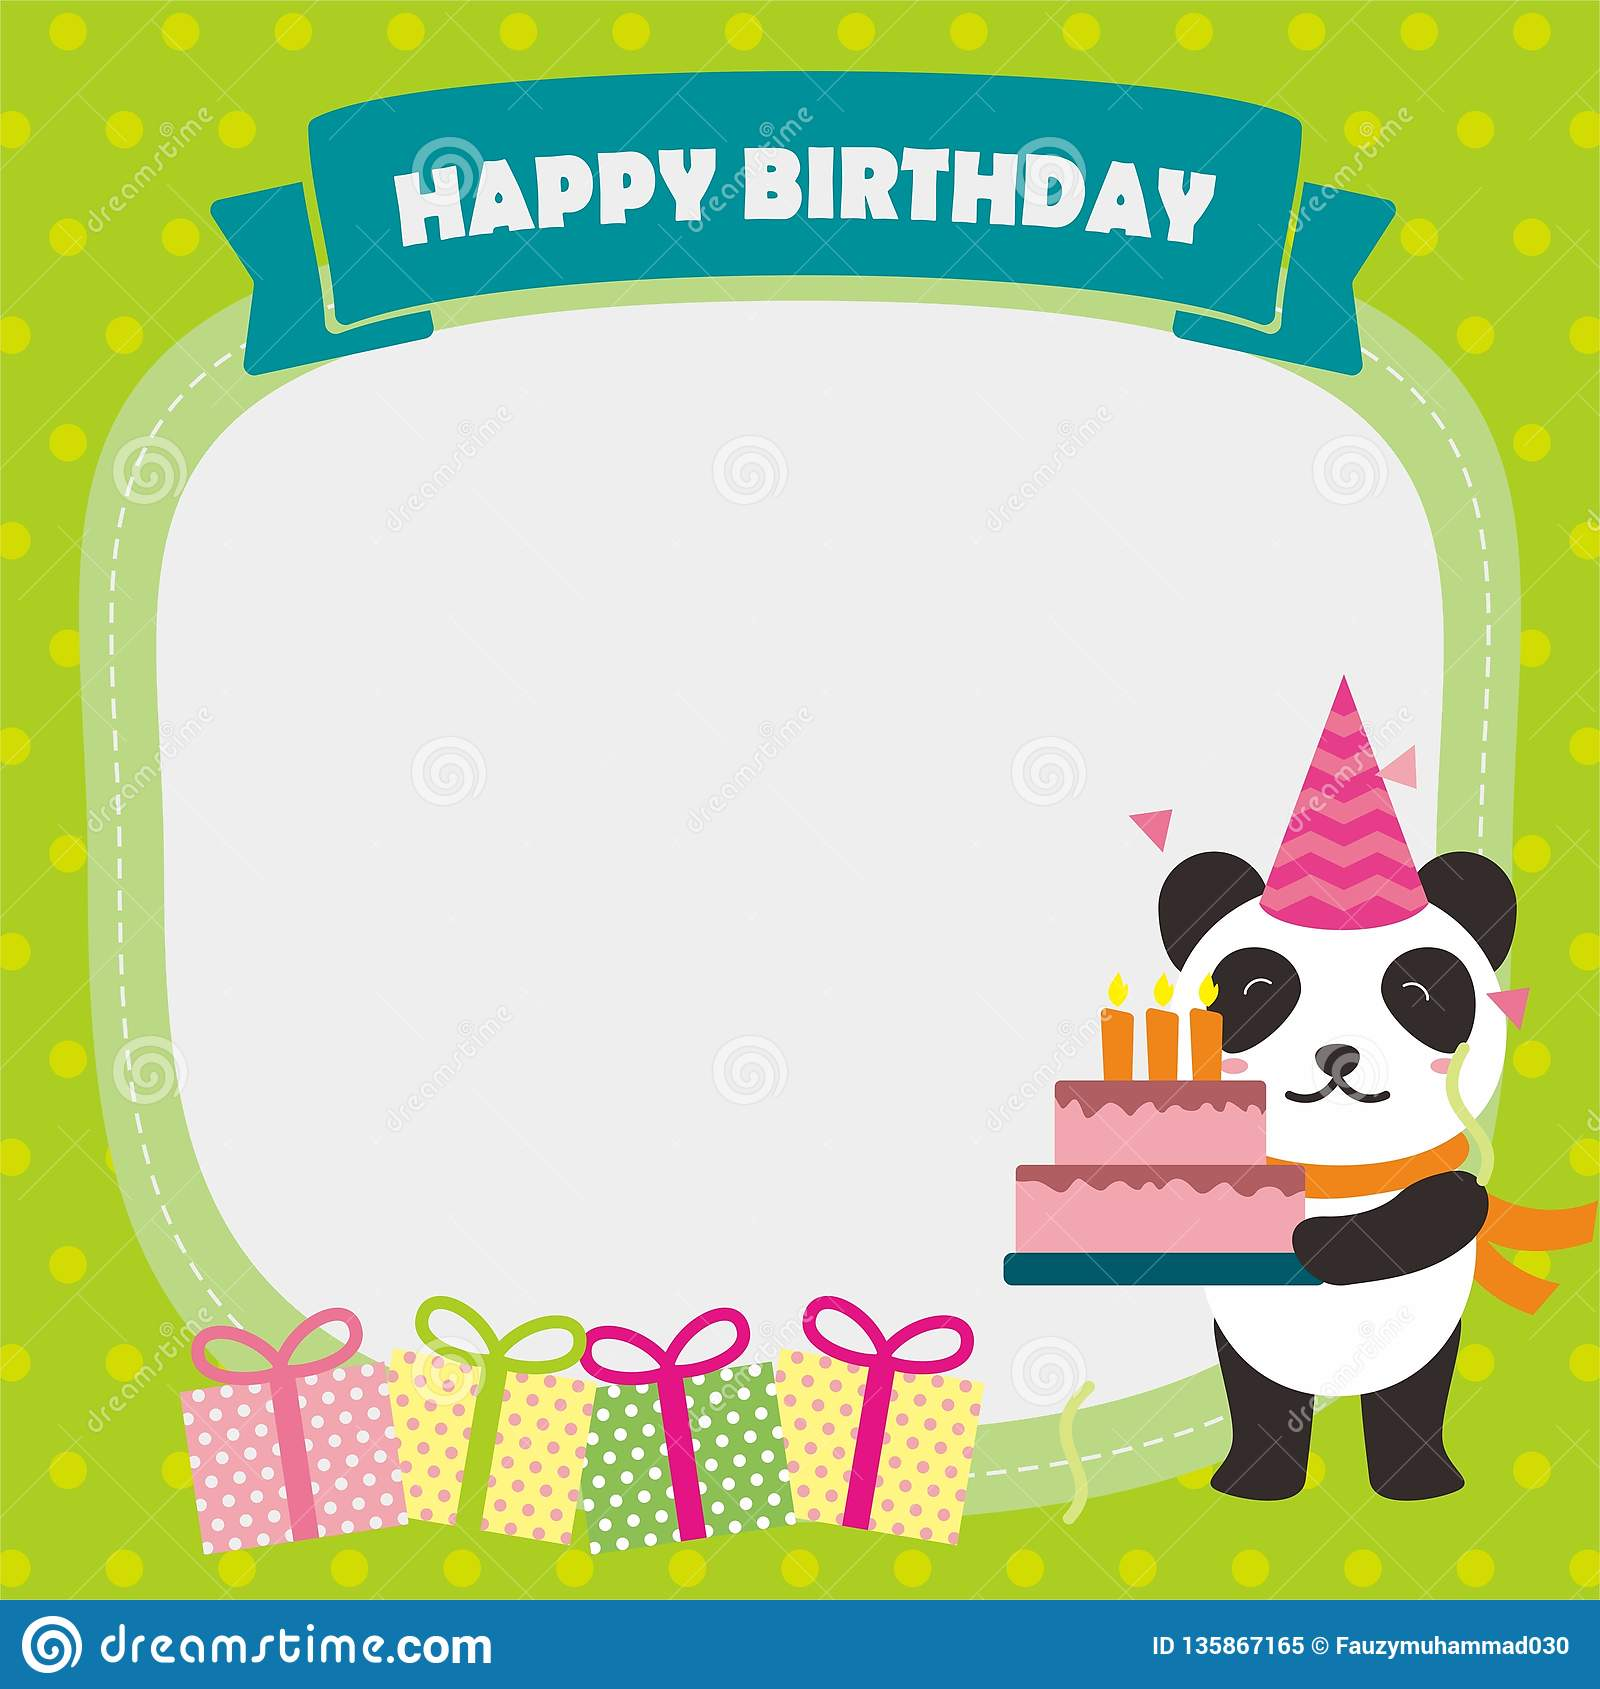 Cute Birthday Card Template With Panda Character Stock Vector Illustration Of Gift Hats 135867165